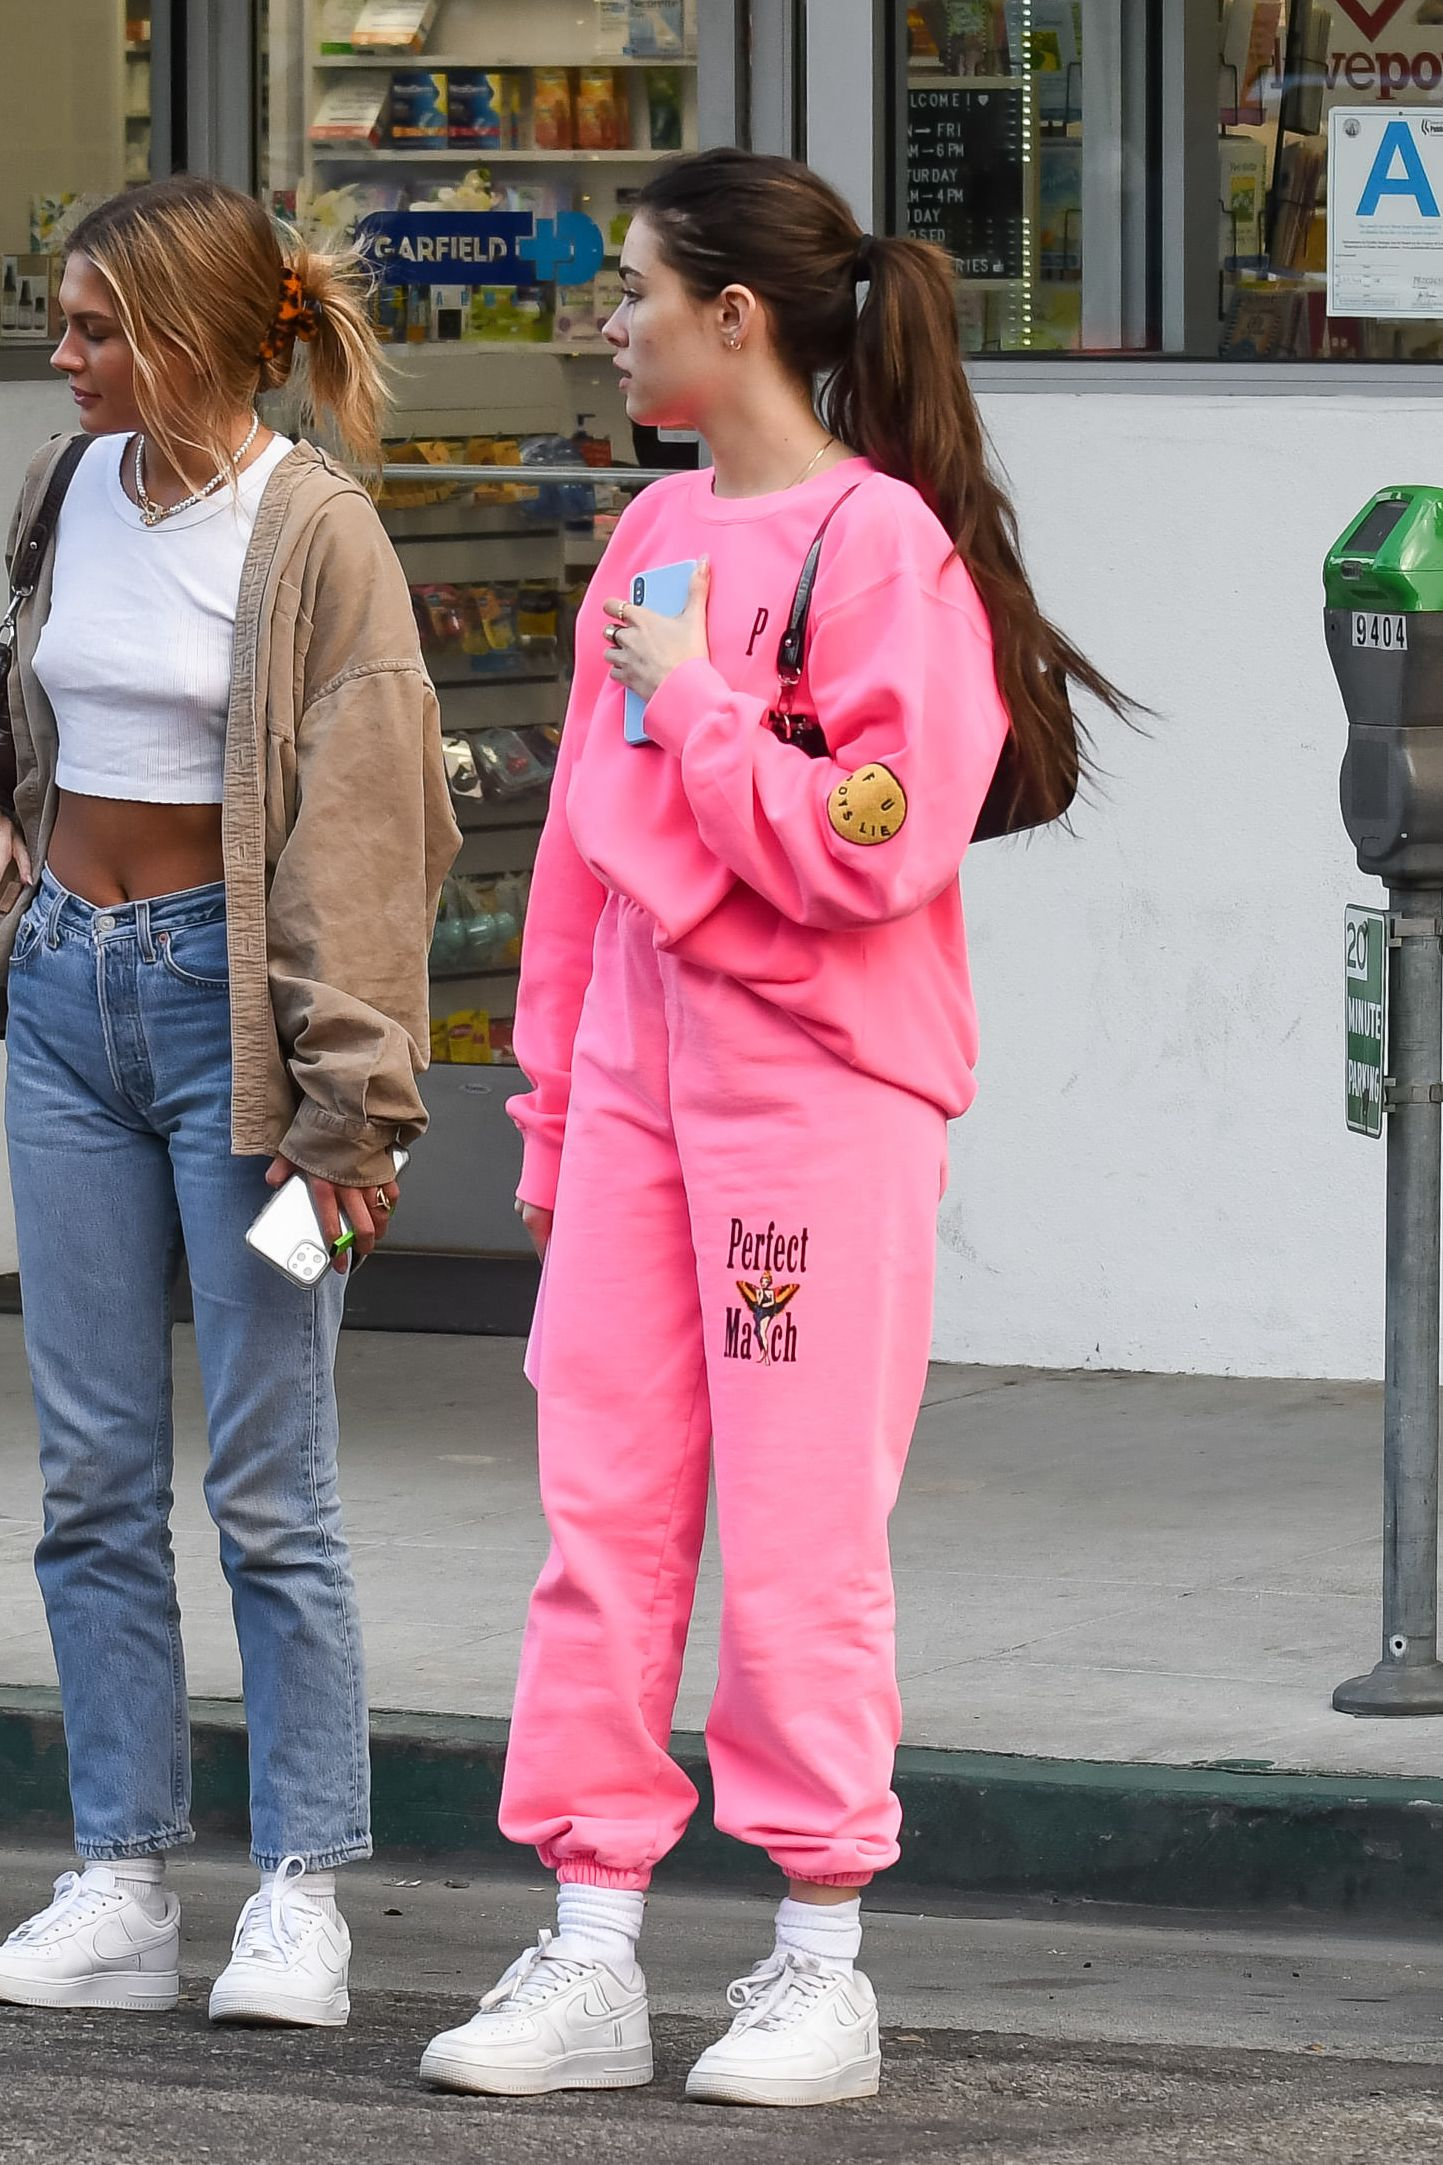 Madison Beer Out in Los Angeles 02/21/2020. #fashion #outfits #celebrityfashion #celebritystyle  #celebritystreetstyle #streetstyle #streetfashion #models #hollywood #hollywoodlife #boyslie #byfarbag